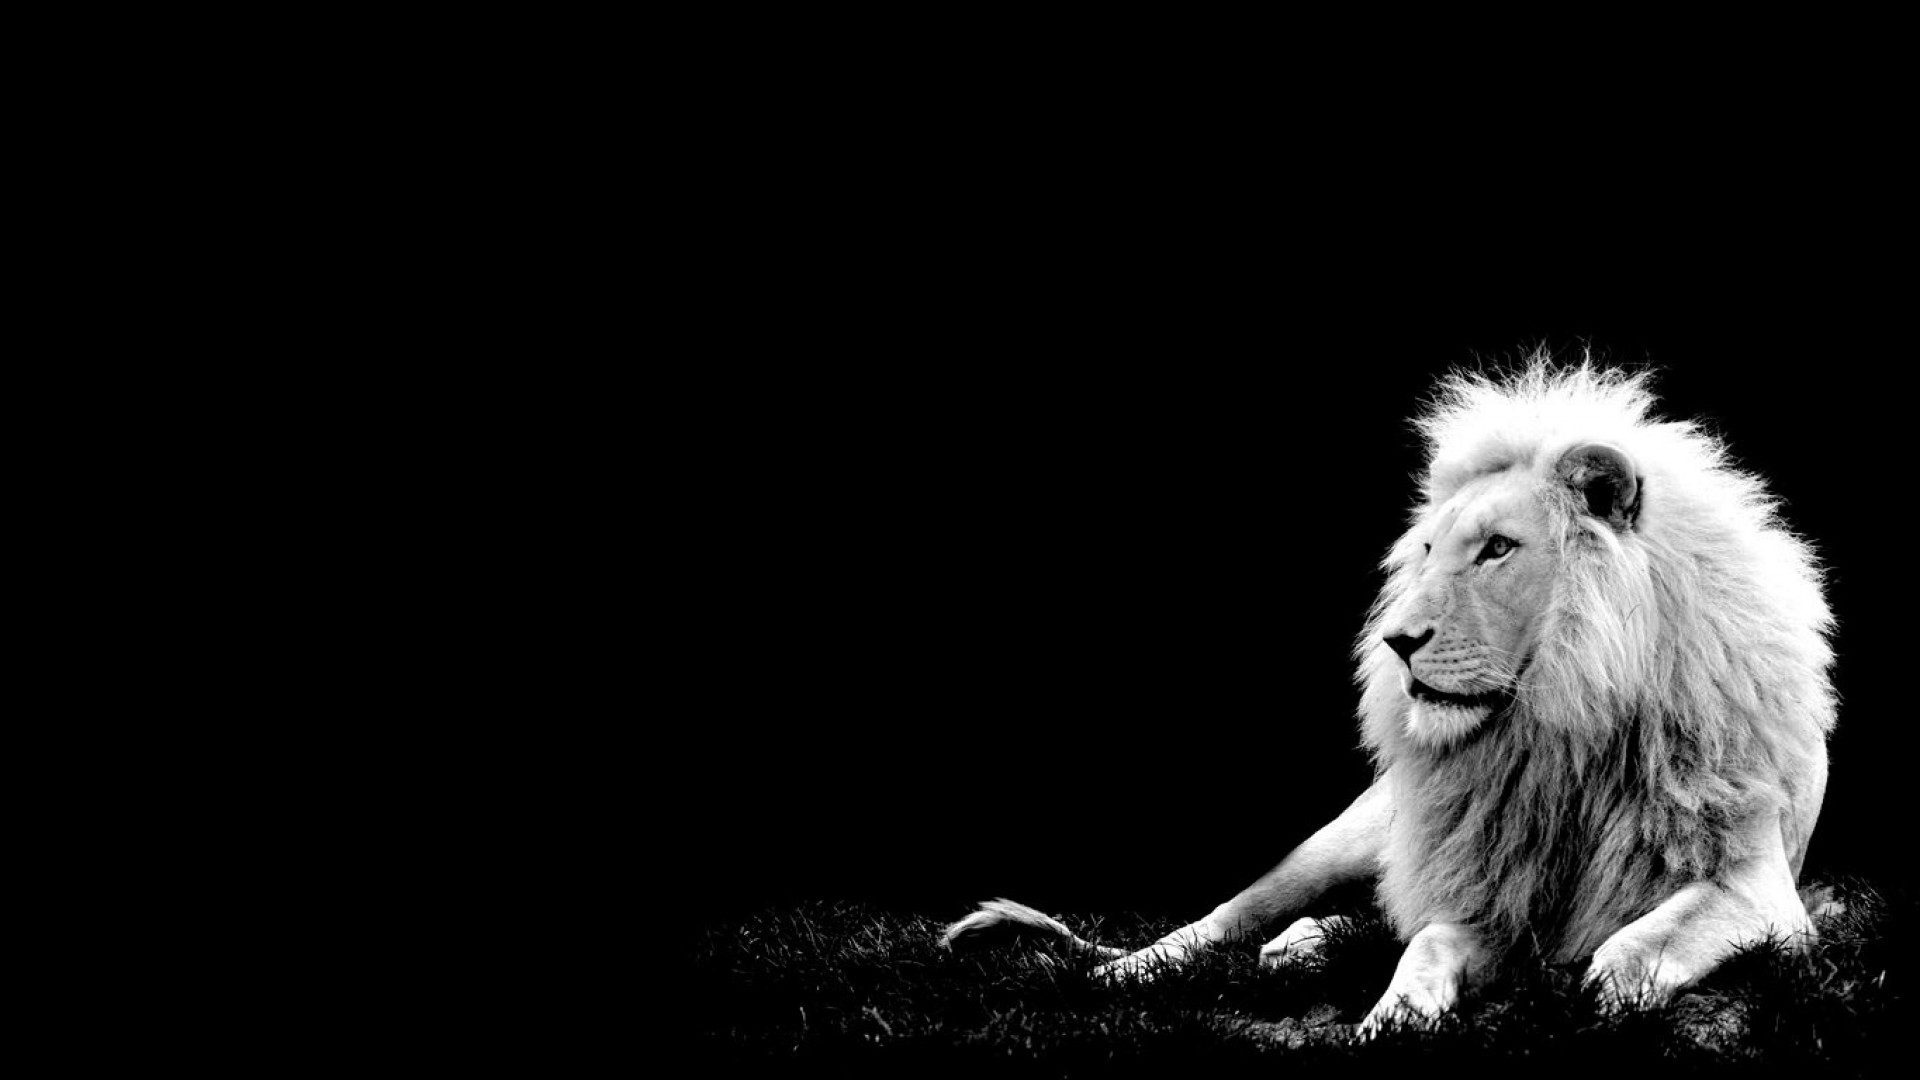 Lions Images Lion Hd Wallpaper And Background Photos 40455264